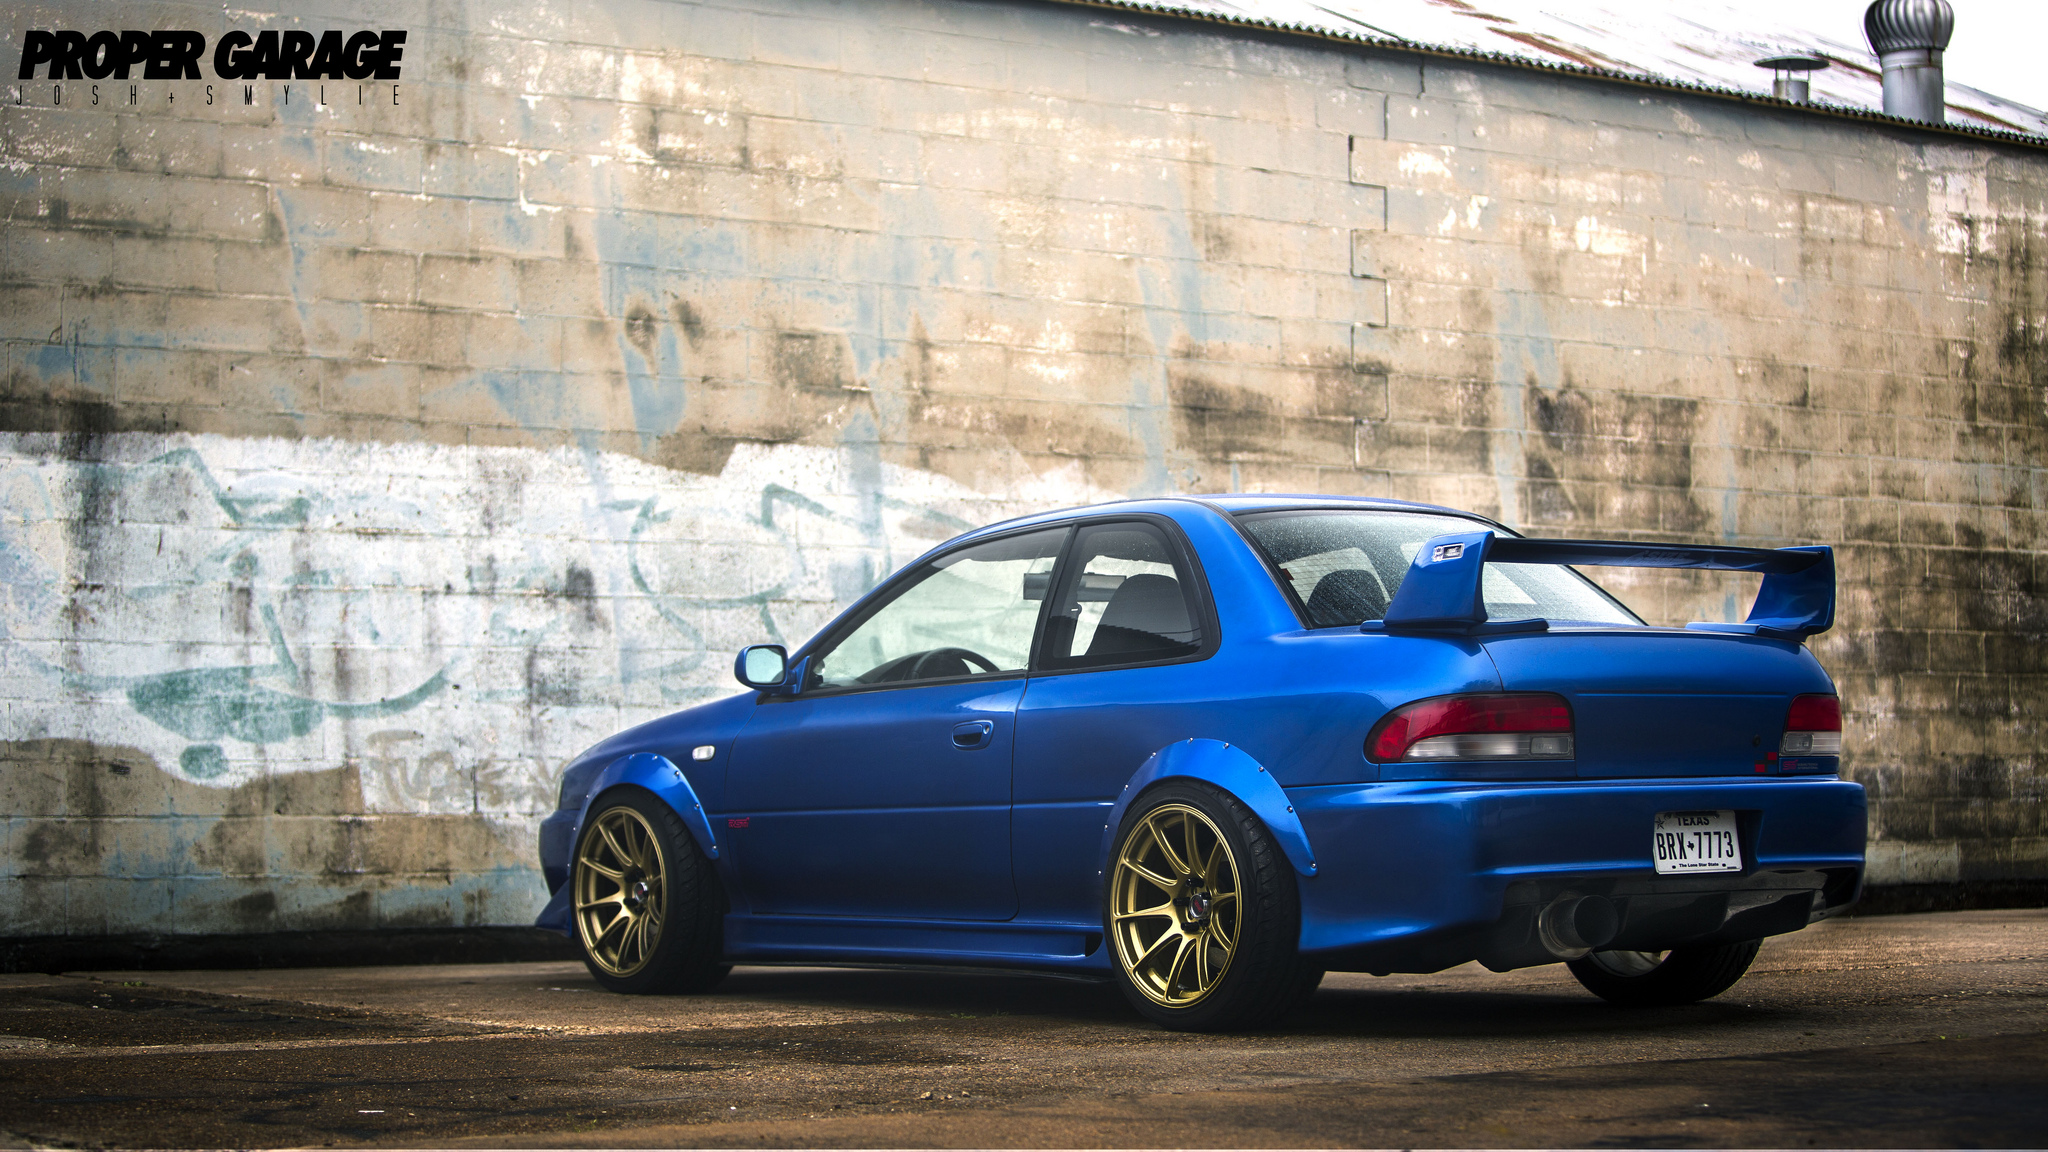 Widebody Drift Car Wallpaper Beautiful Gc8 Stancenation Form Gt Function